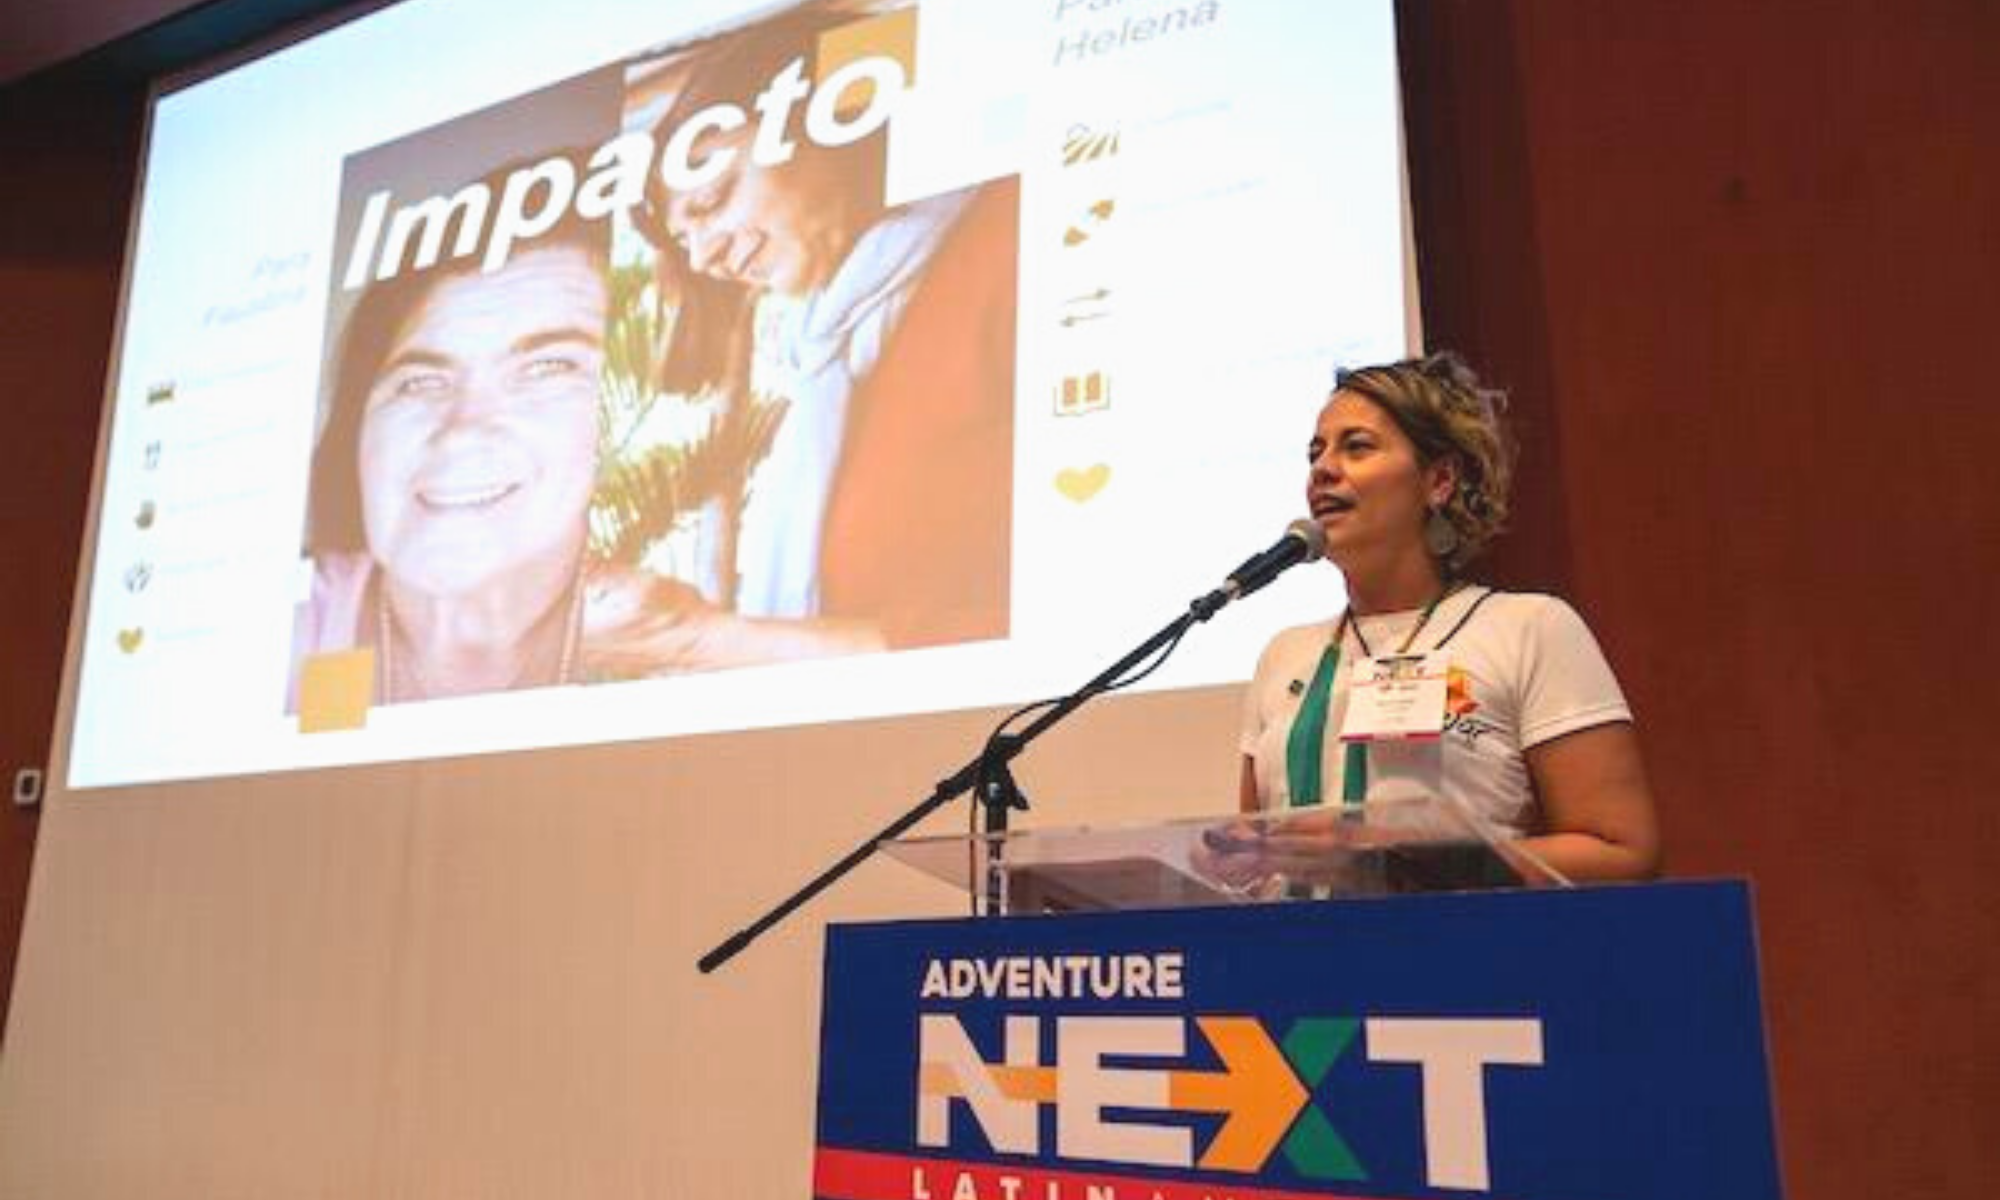 Adventure Next Palestra